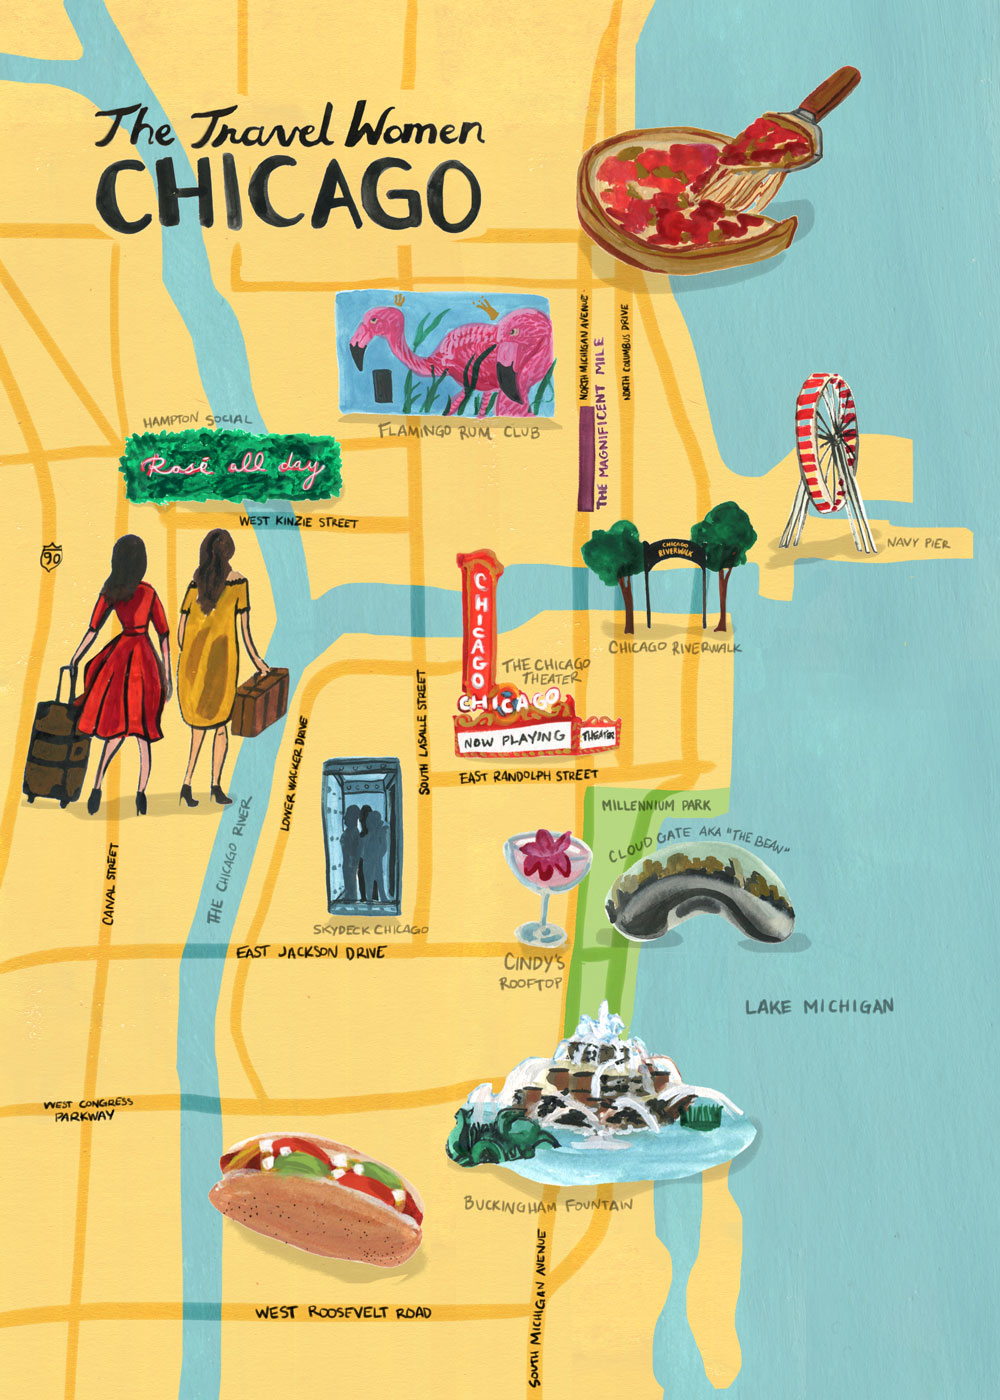 Illustrated map of Chicago with the top places to go and two women with suitcases